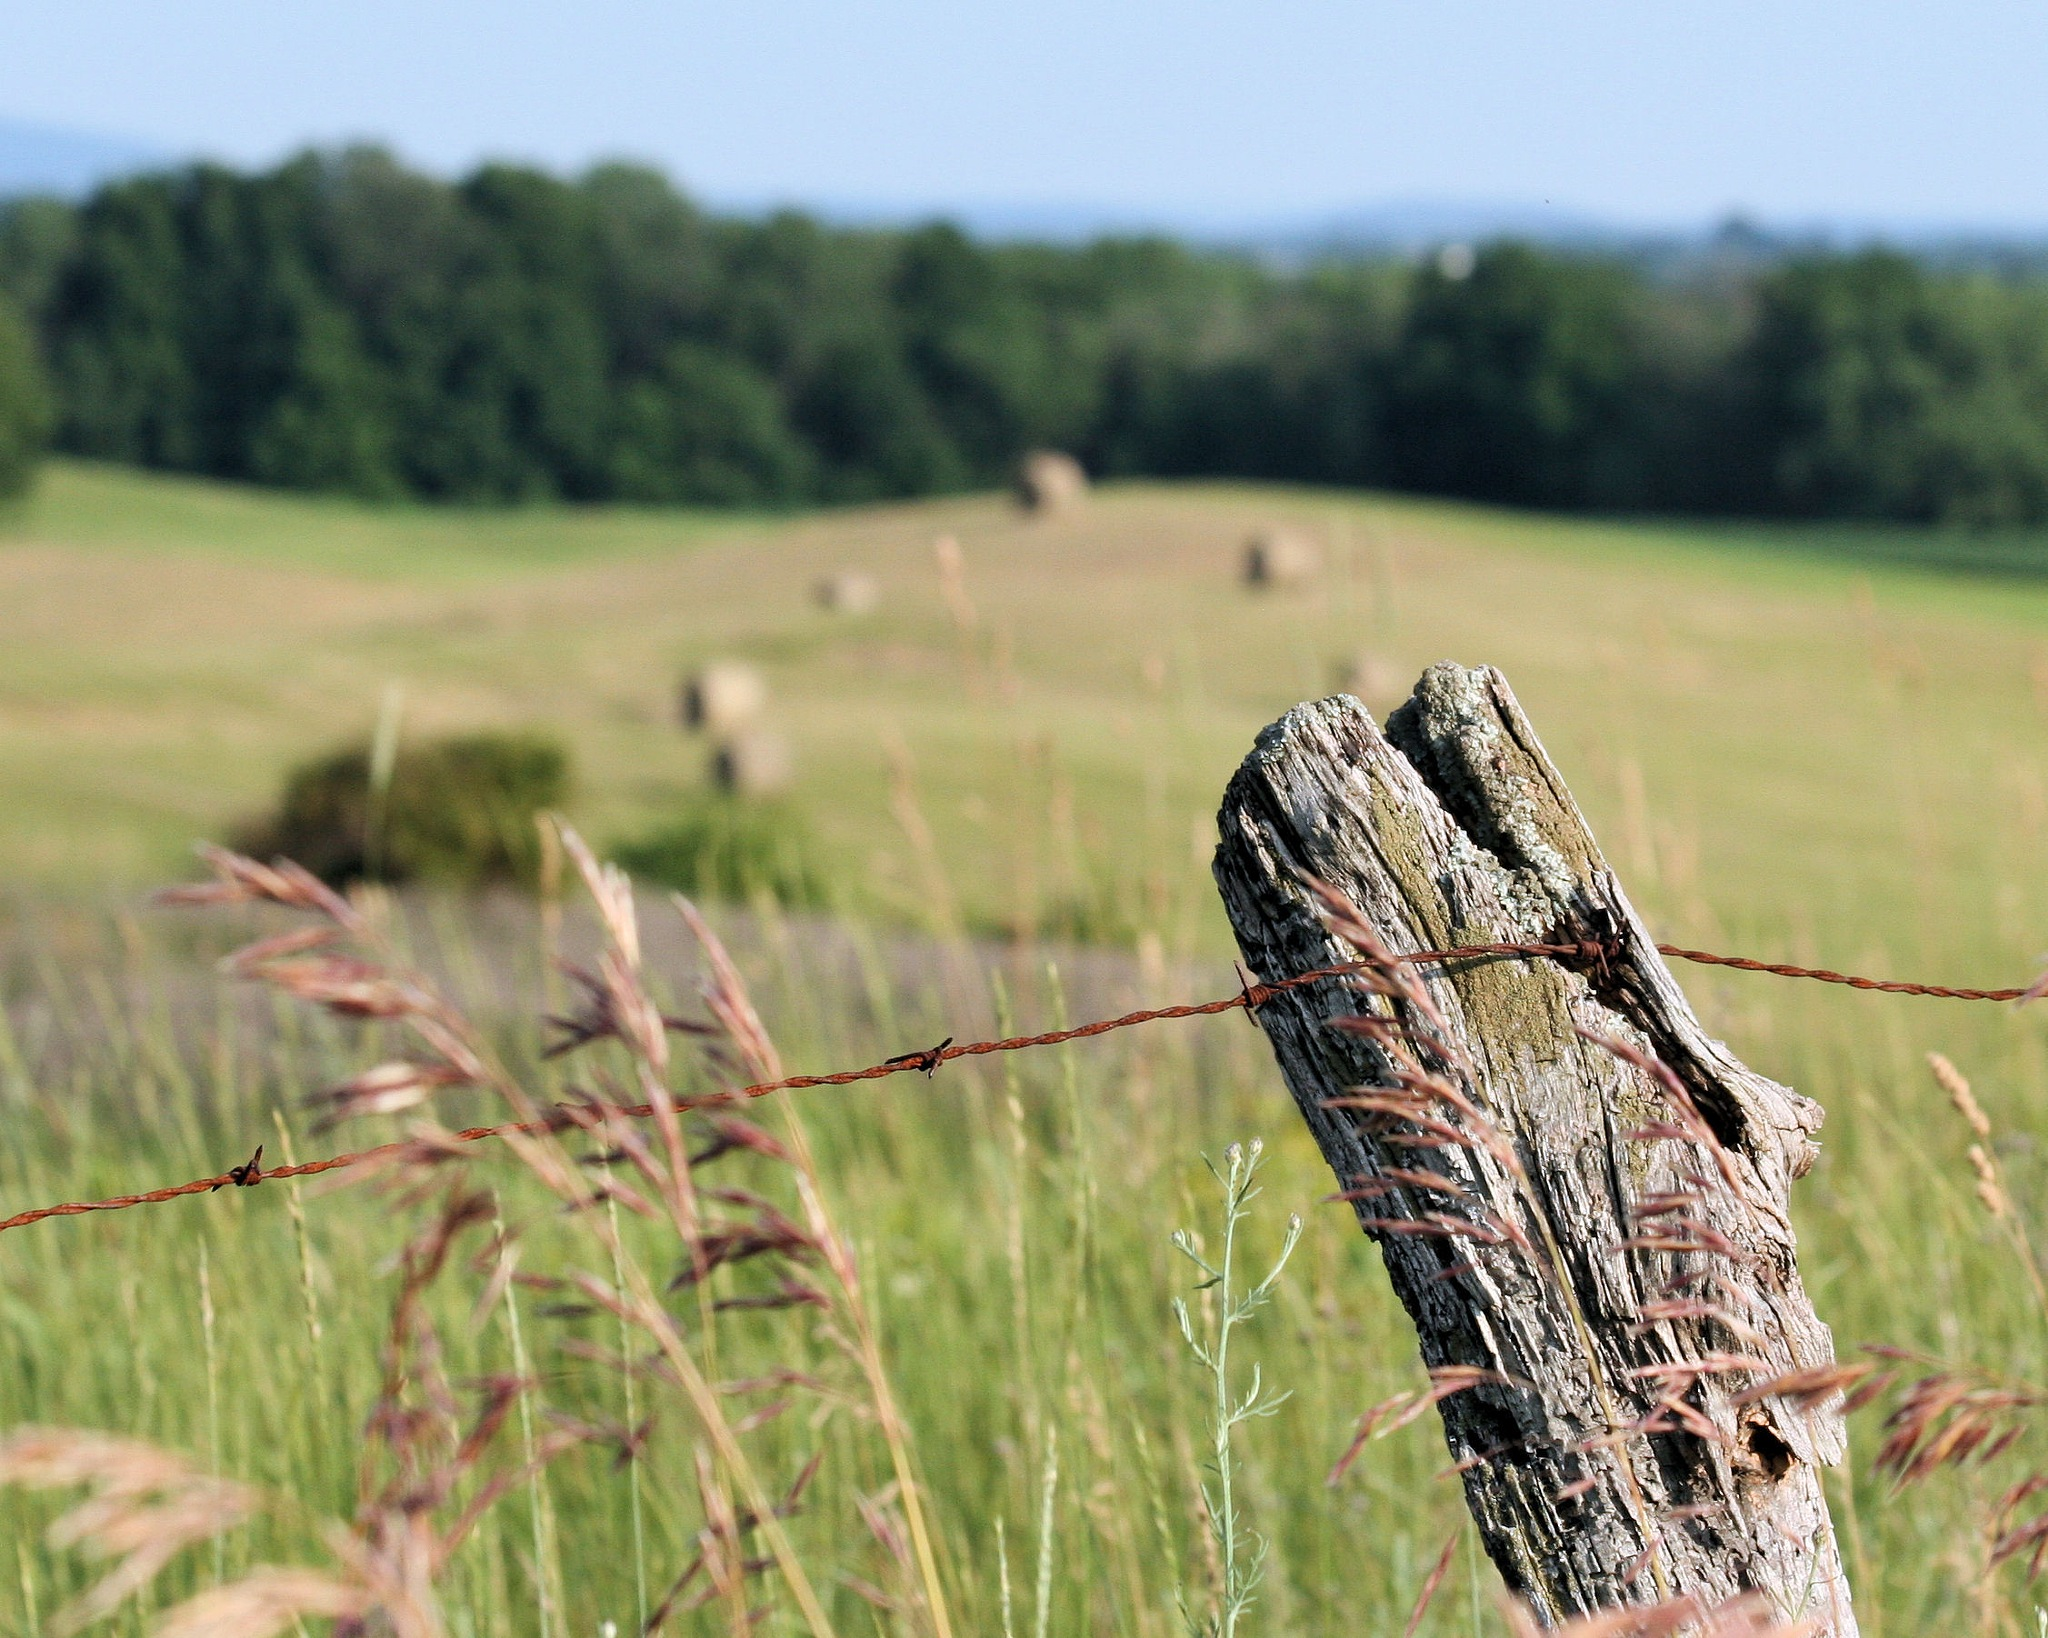 Fence post by acwhite